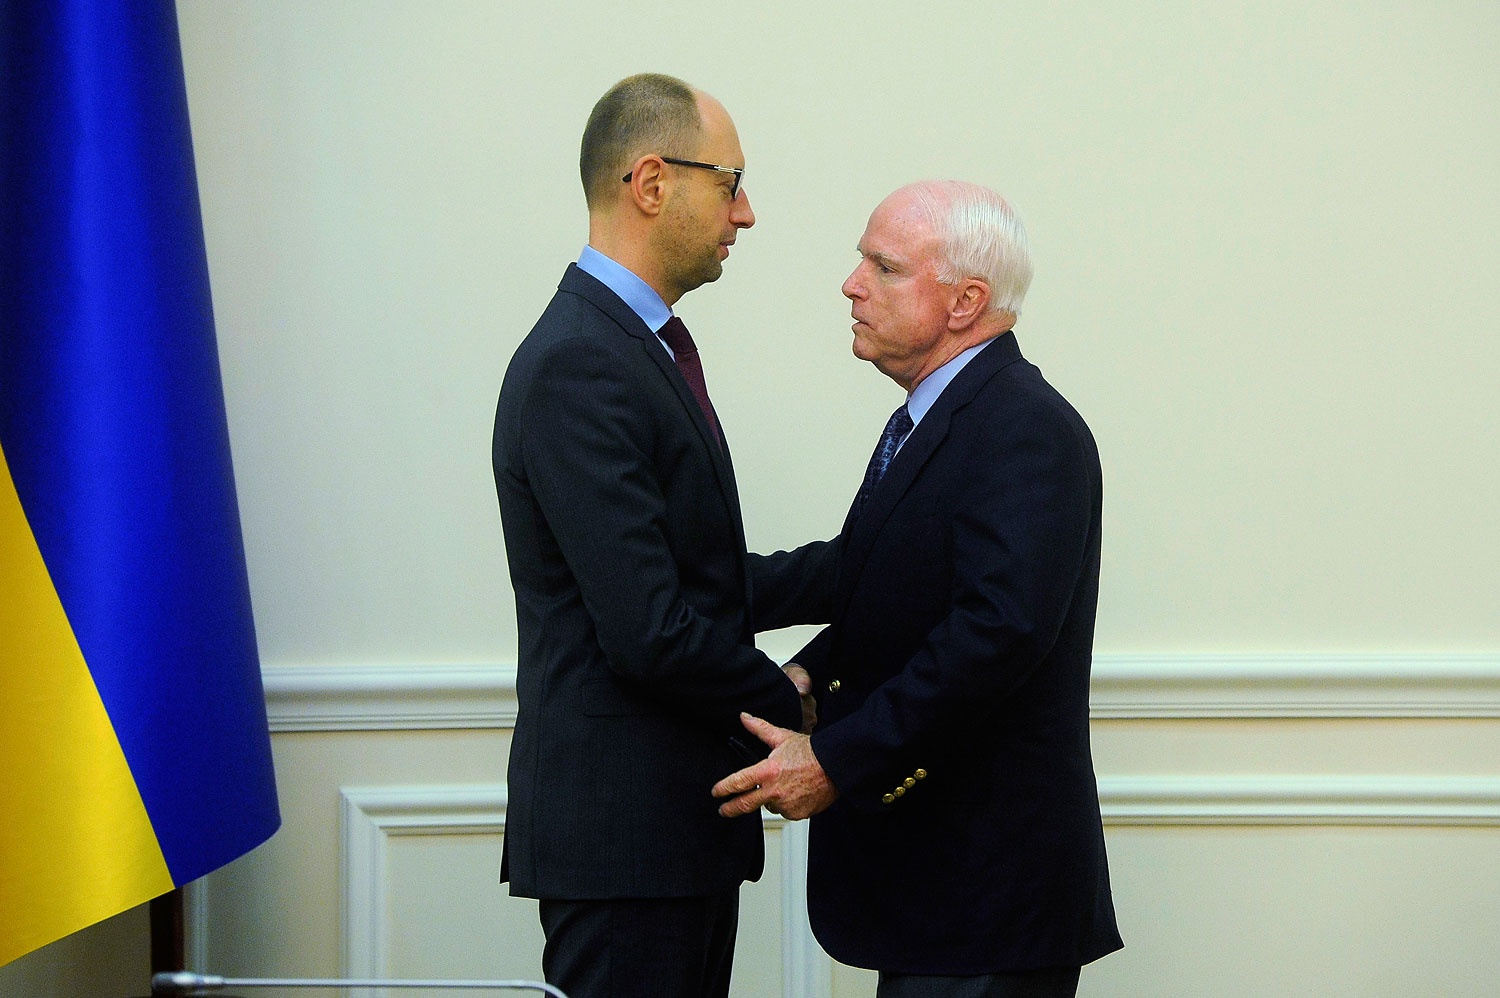 Ukraine's Prime Minister Arseny Yatseniuk, left, meets with Senator John McCain in Kiev March 15, 2014.